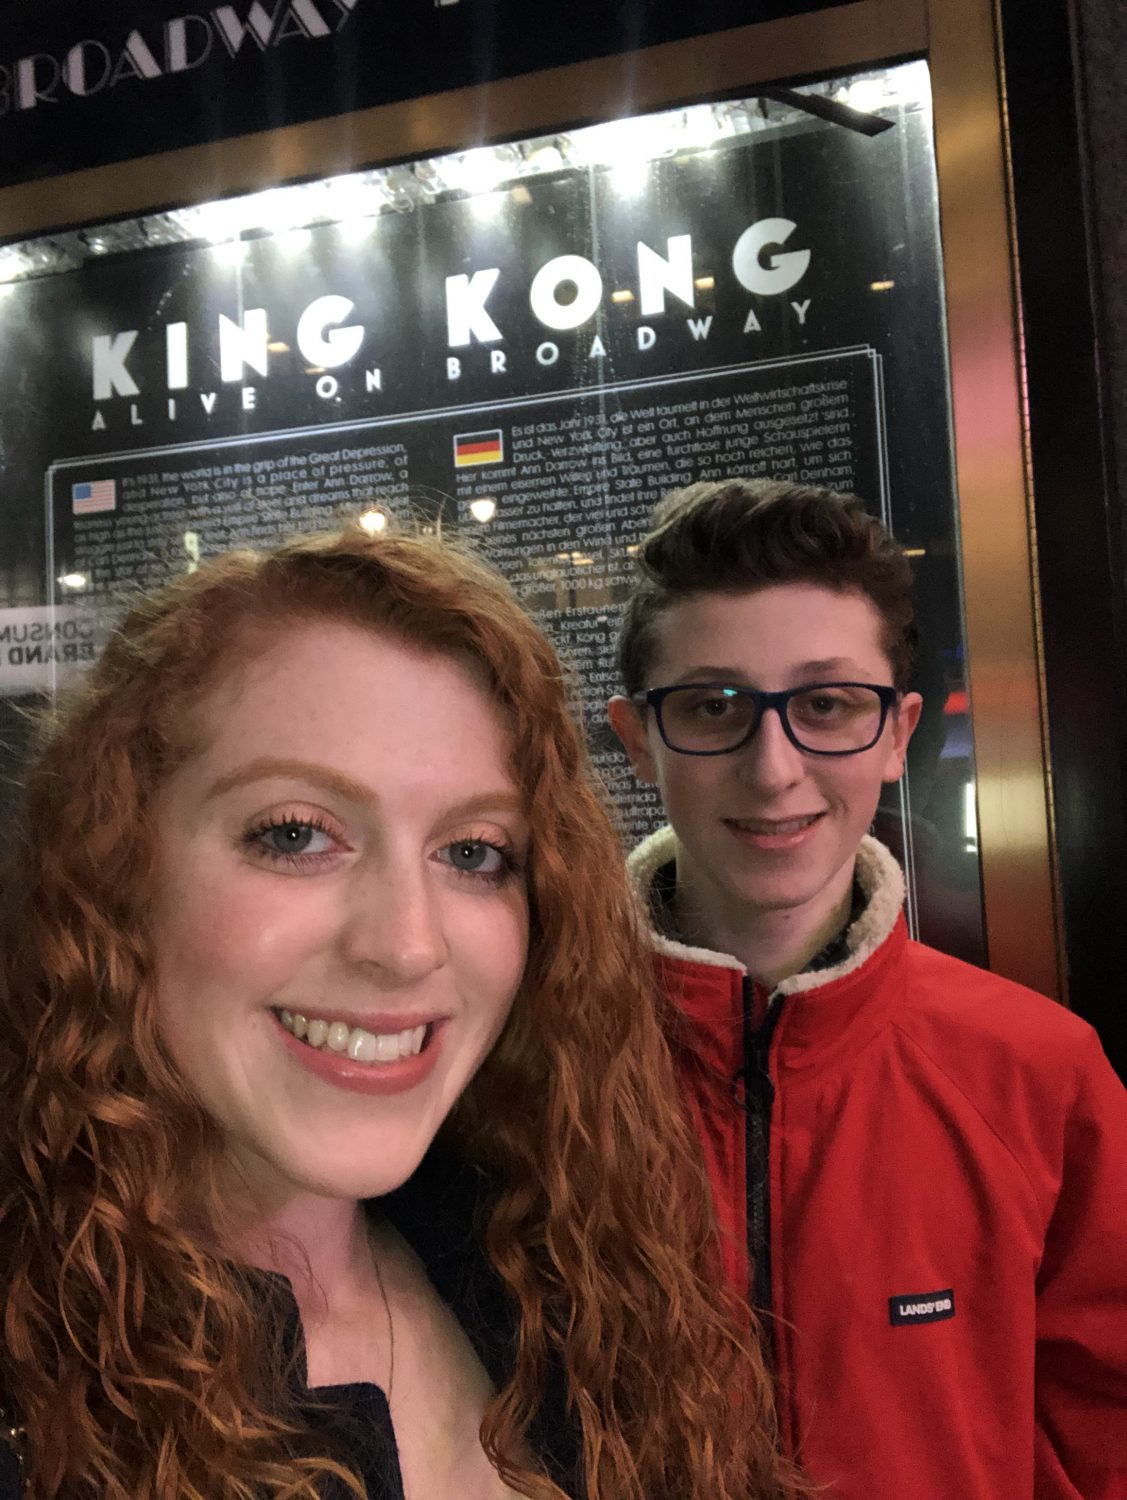 King Kong has Everything you want in a Broadway Show